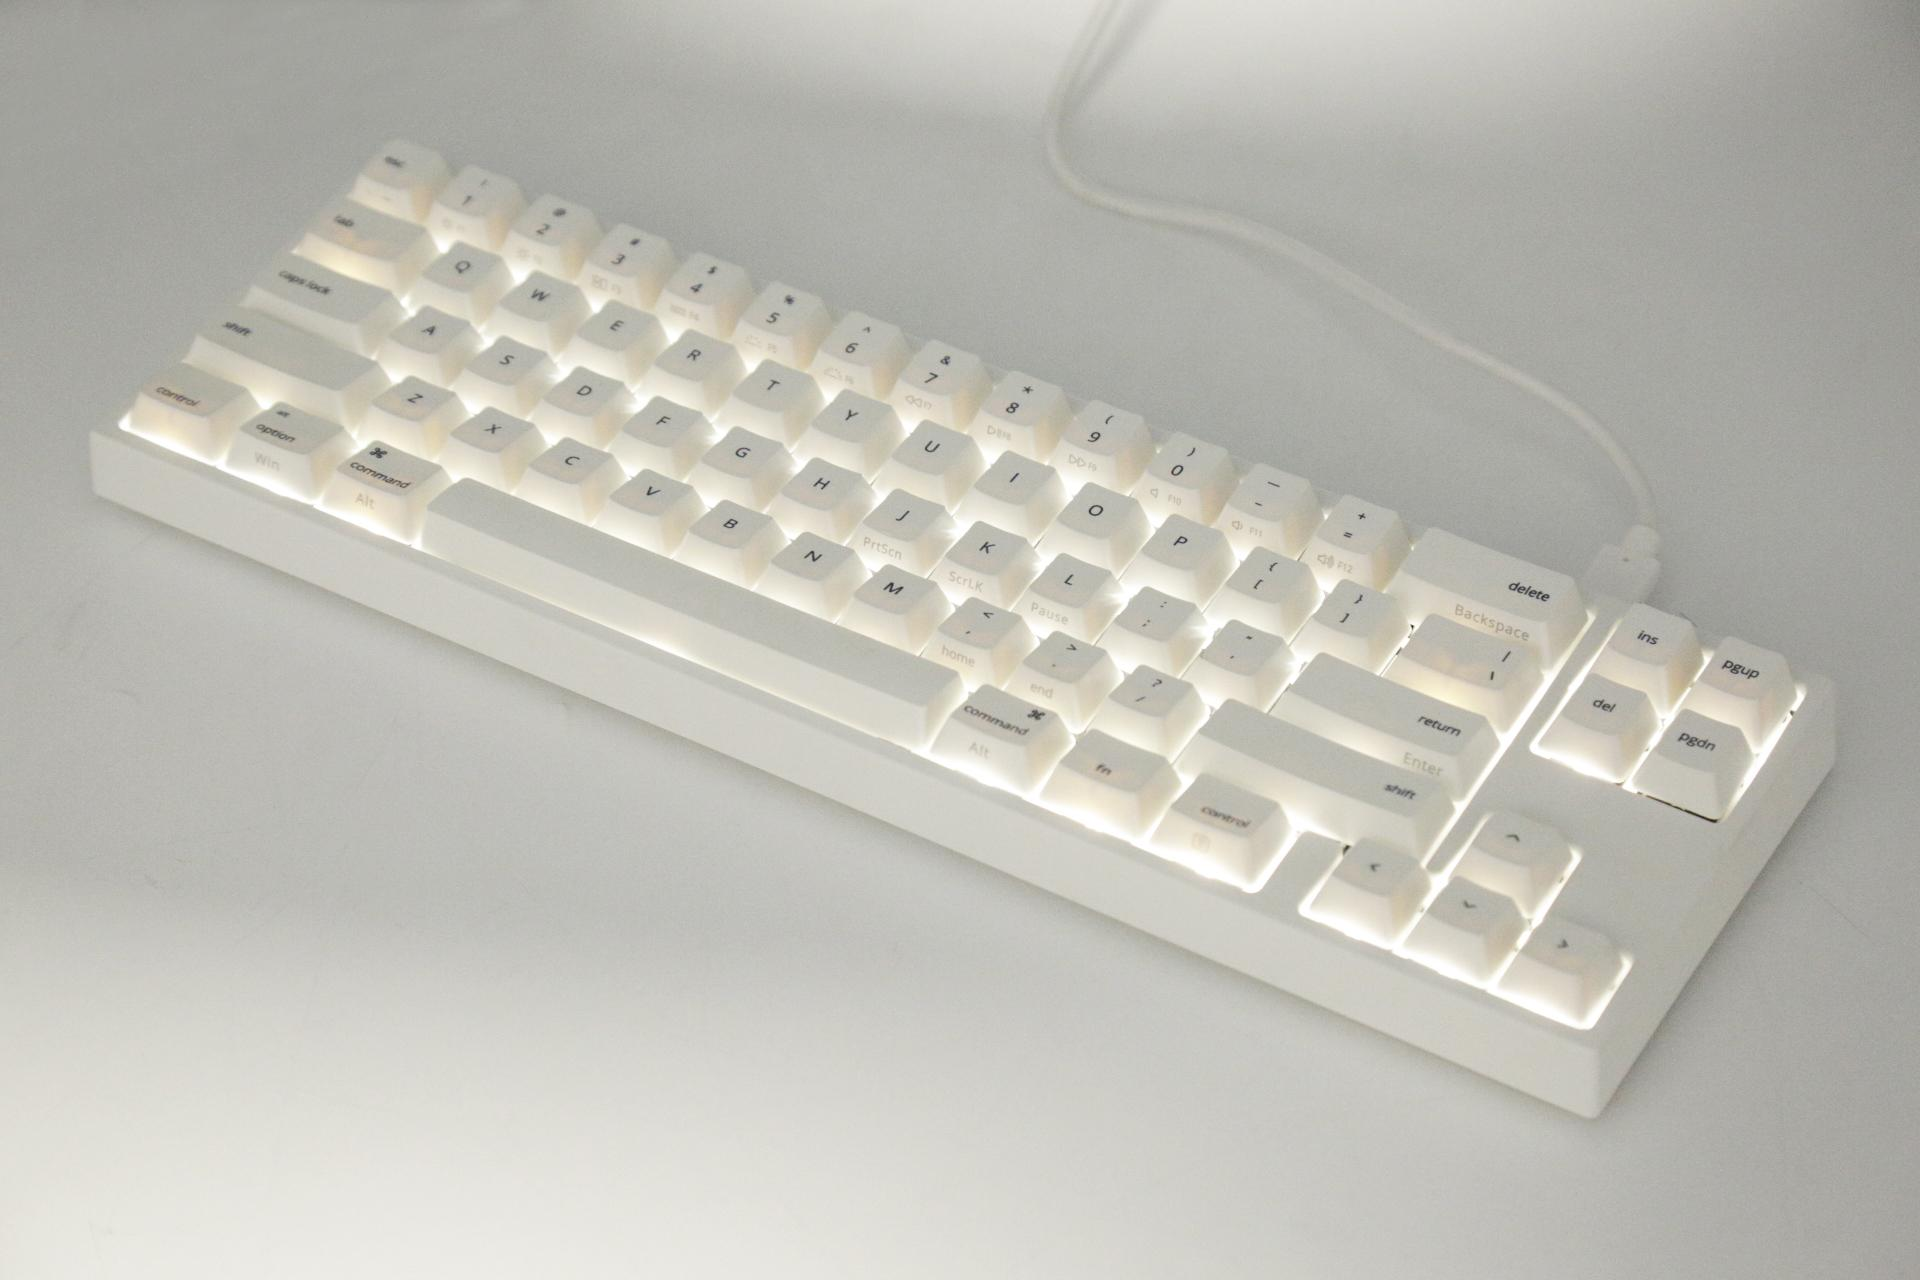 Ducky MIYA Pro Mac White LED 65% Dye Sub PBT Mechanical Keyboard with  Cherry MX Black, Brown, Blue, Red, Silver, Clear, or Silent Red switches